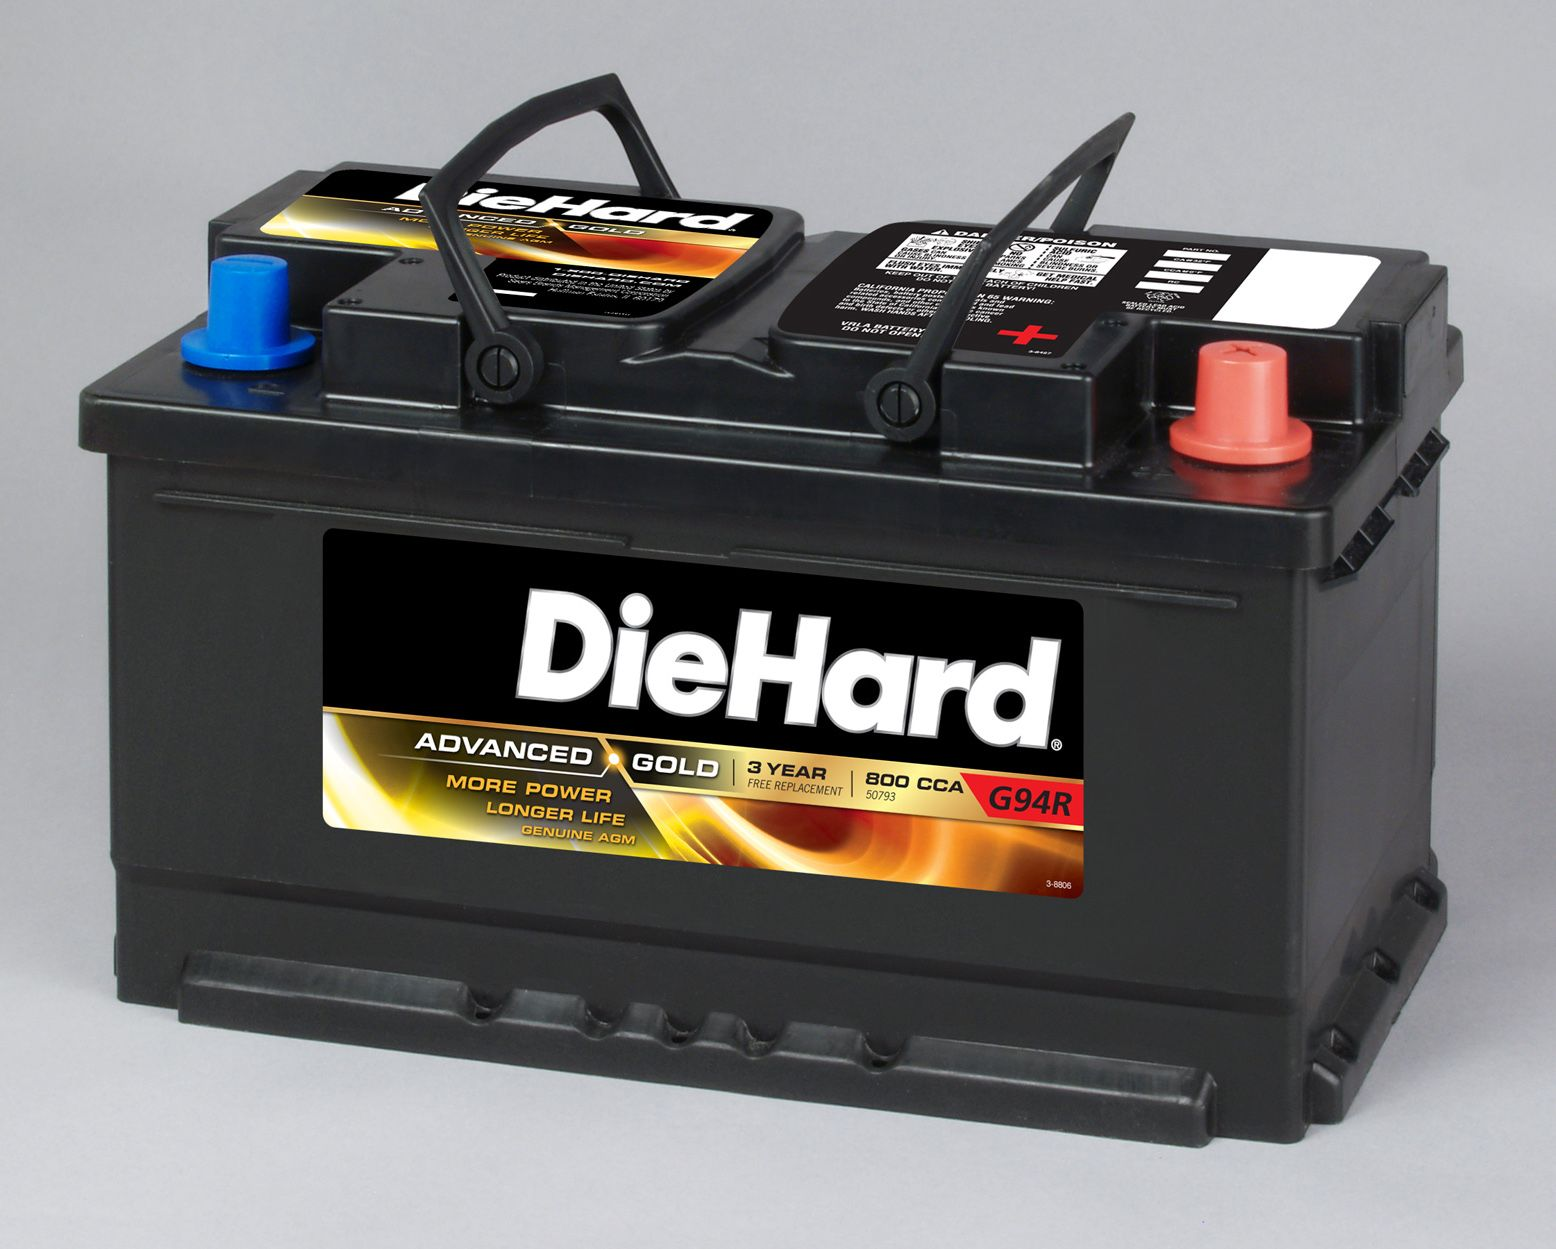 hight resolution of diehard gold agm automotive battery group size ep 94r price with exchange